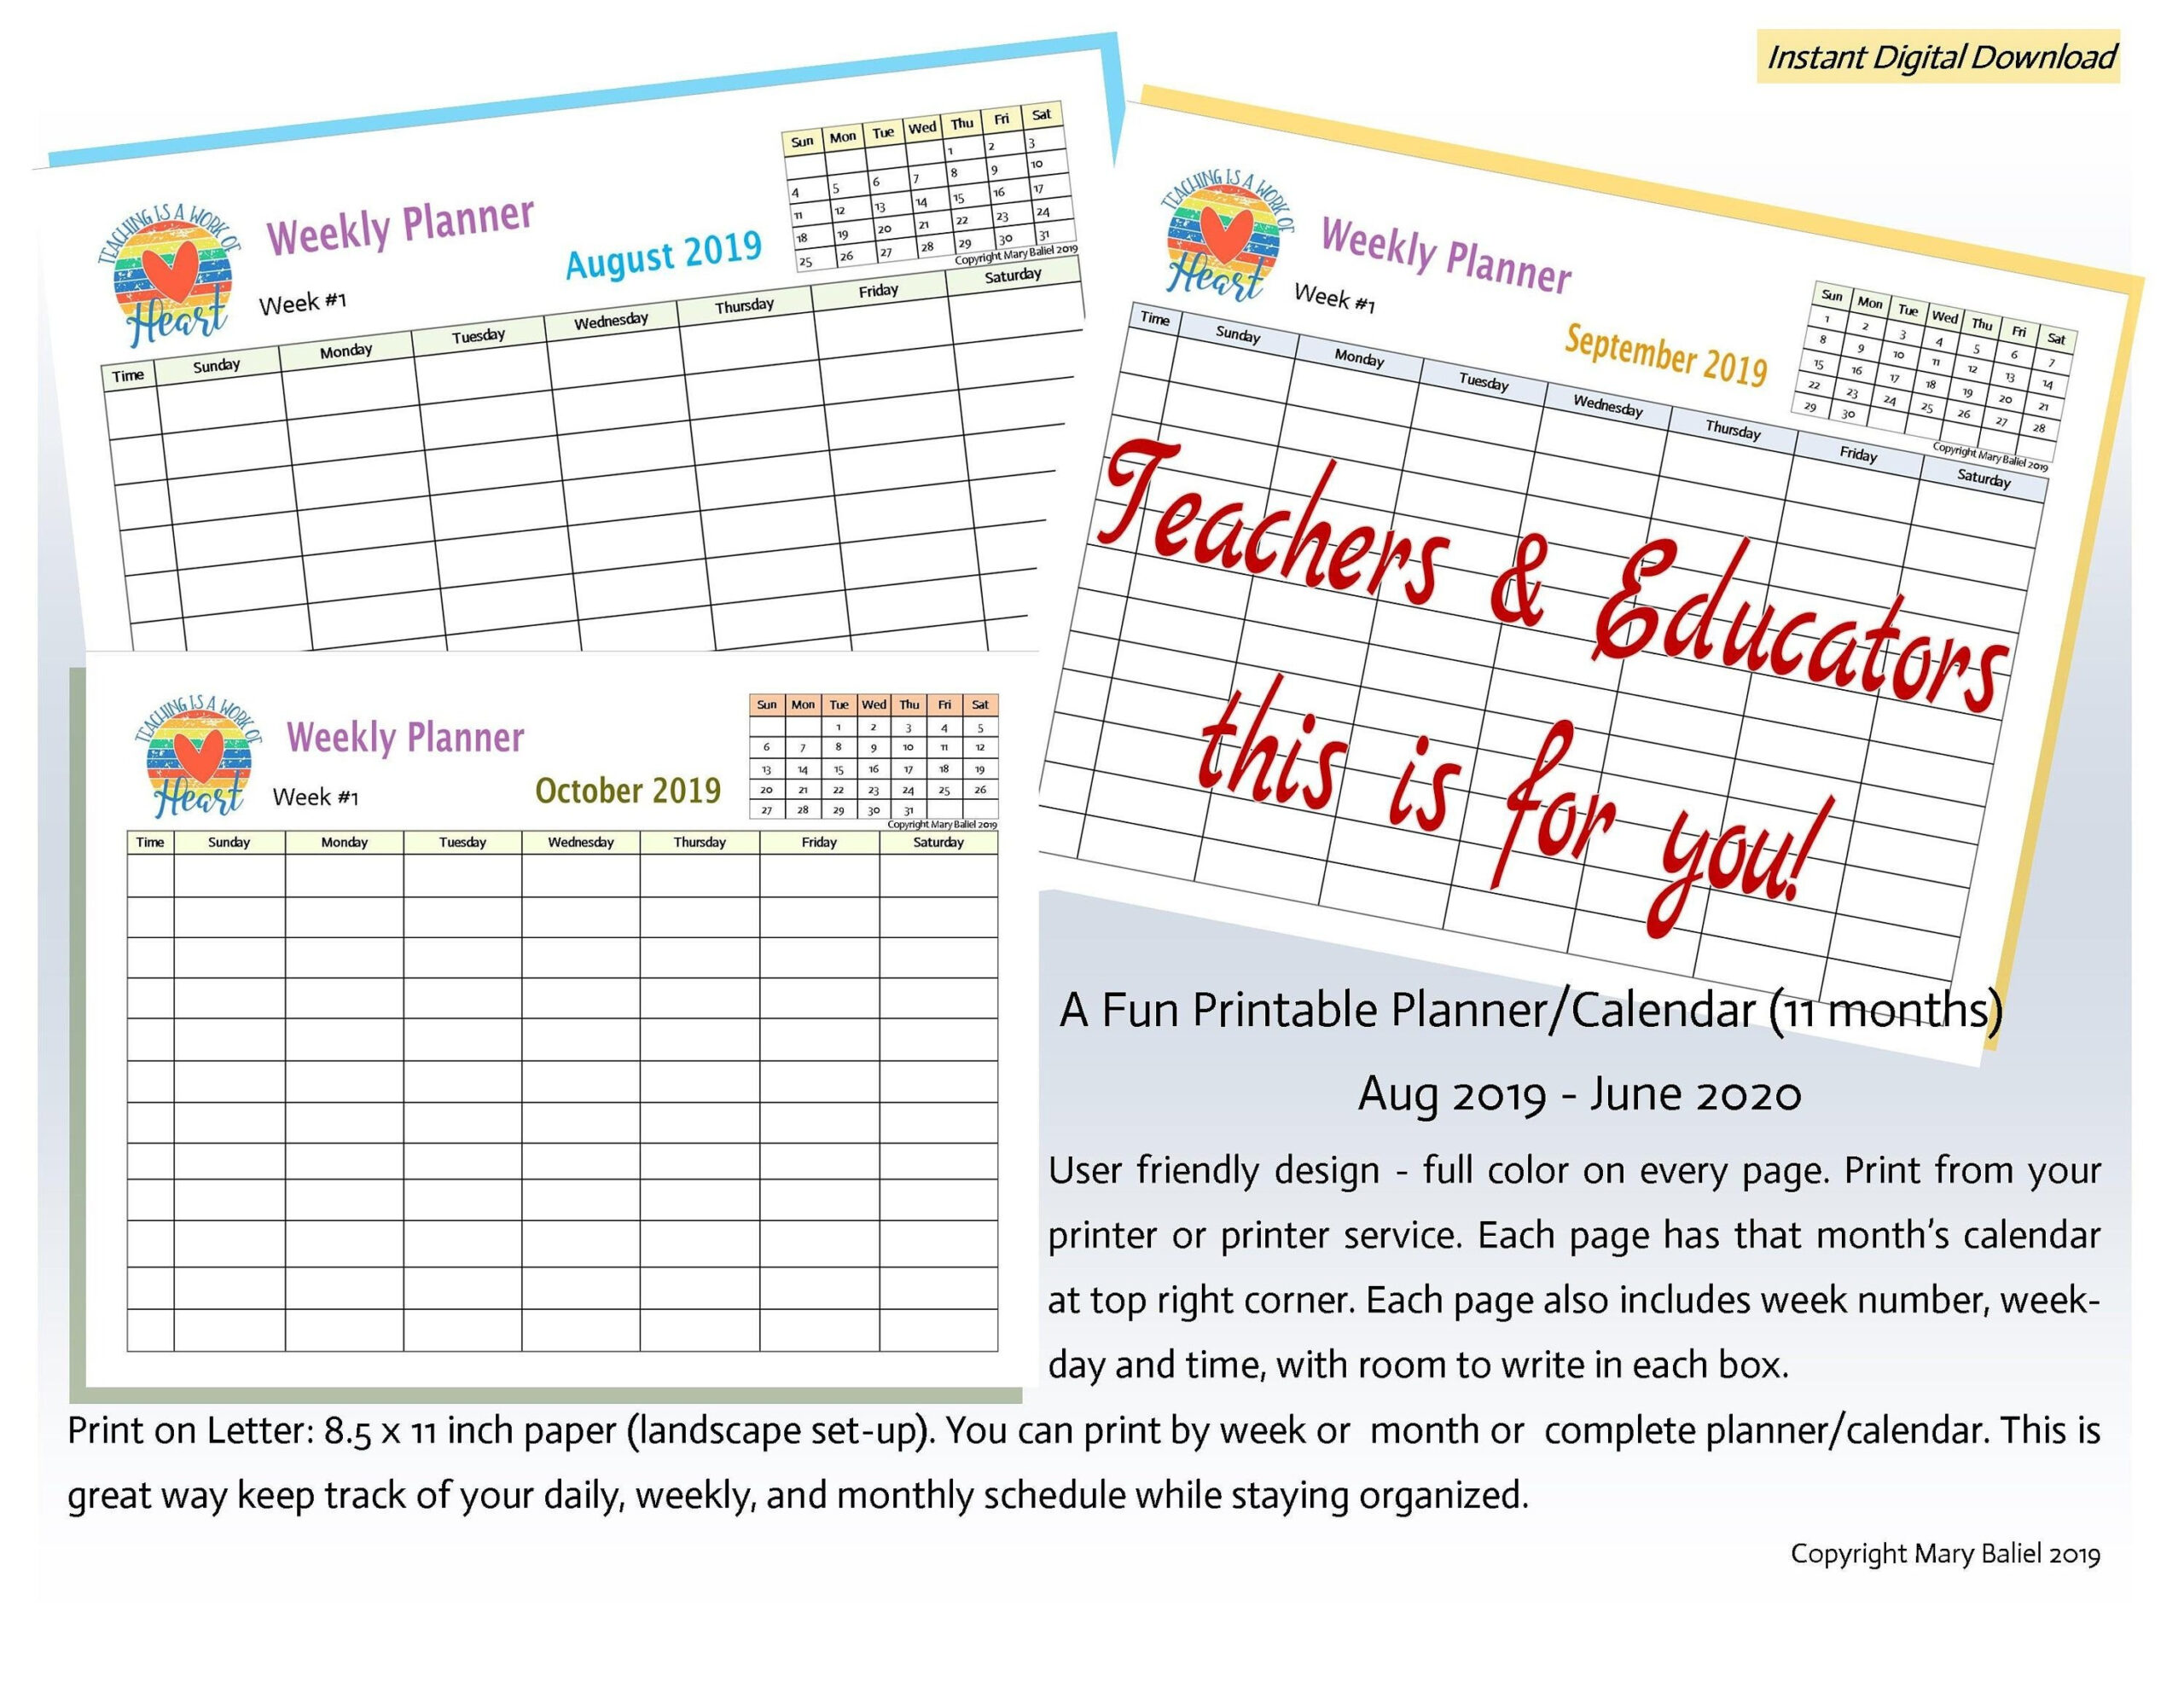 Teachers, Educators, Planner, Schedule, Calendar, Time within Weekly Planner For Teachers Image